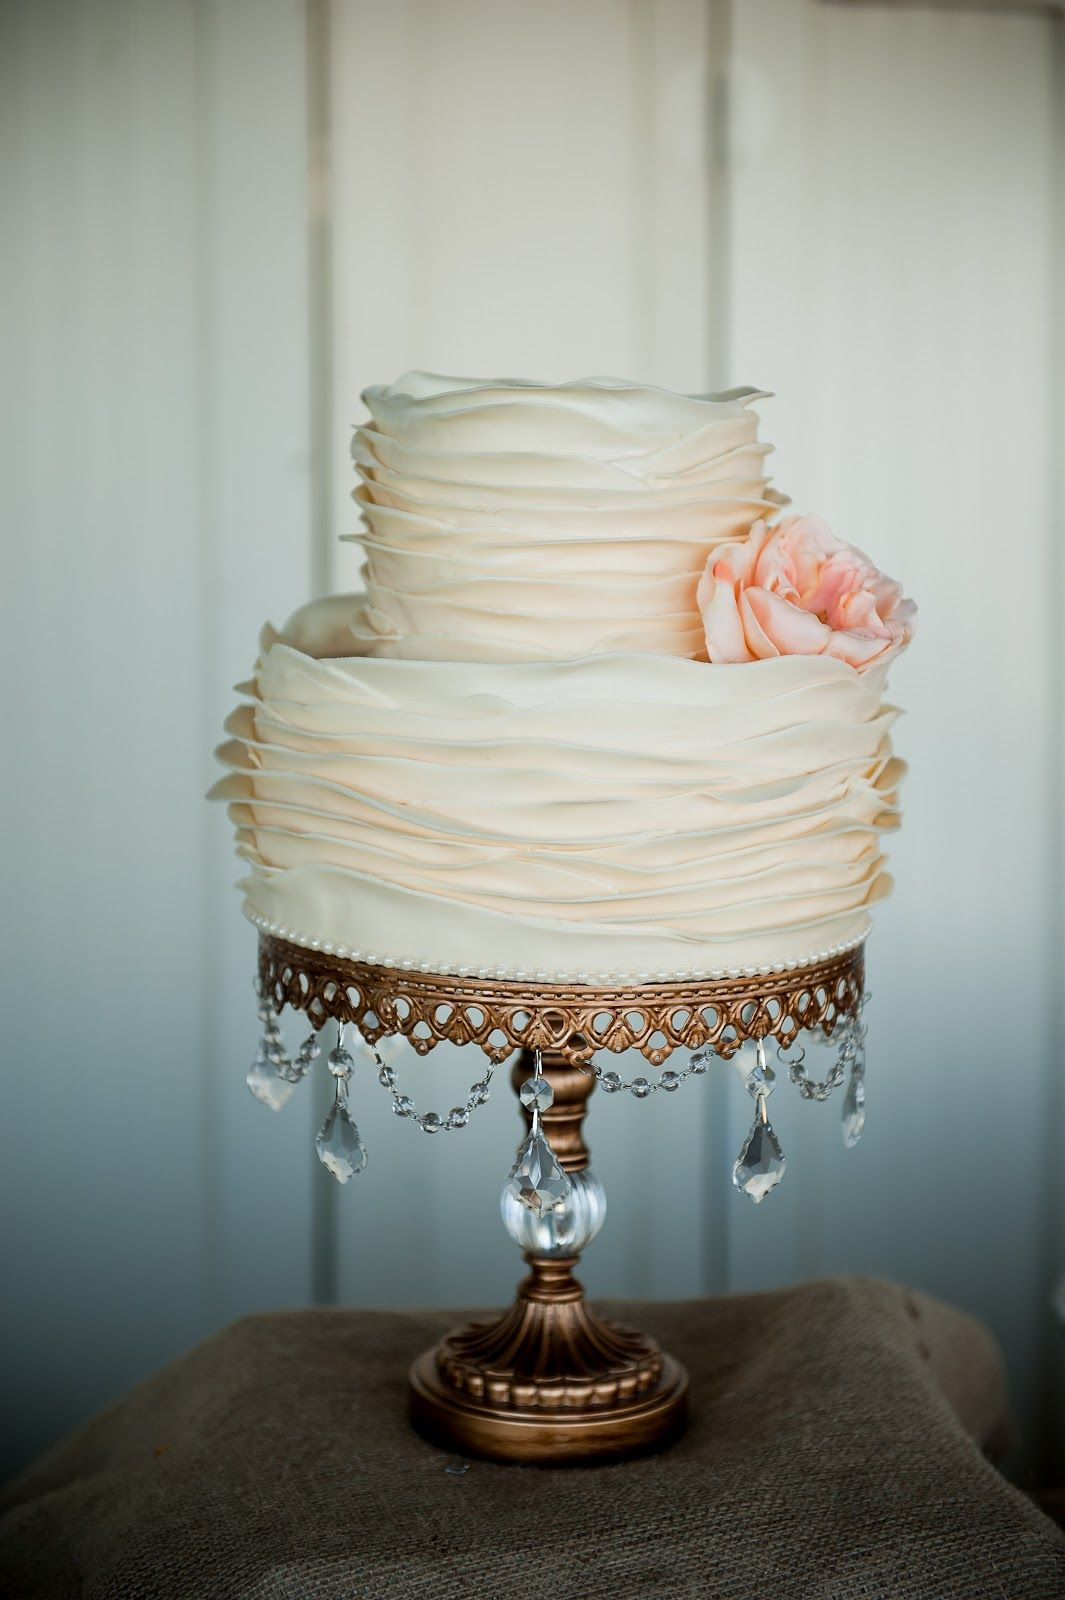 Keep Your Cake Itself Simple And Place It On A Decorate Or Elaborate Stand For